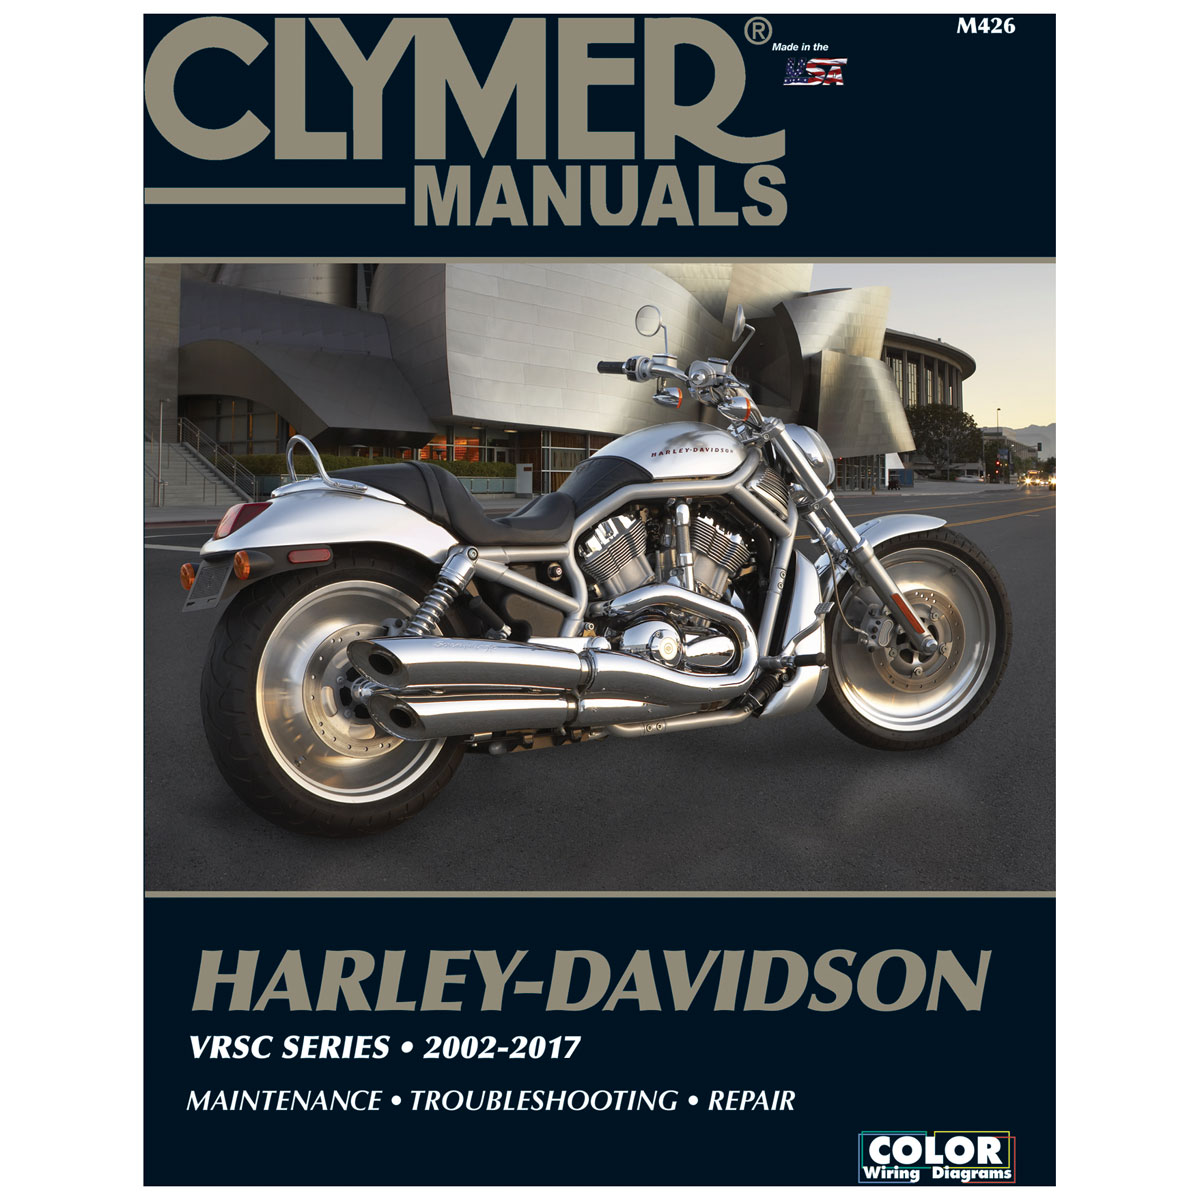 WRG-1669] Harley V Rod Engine Diagram on